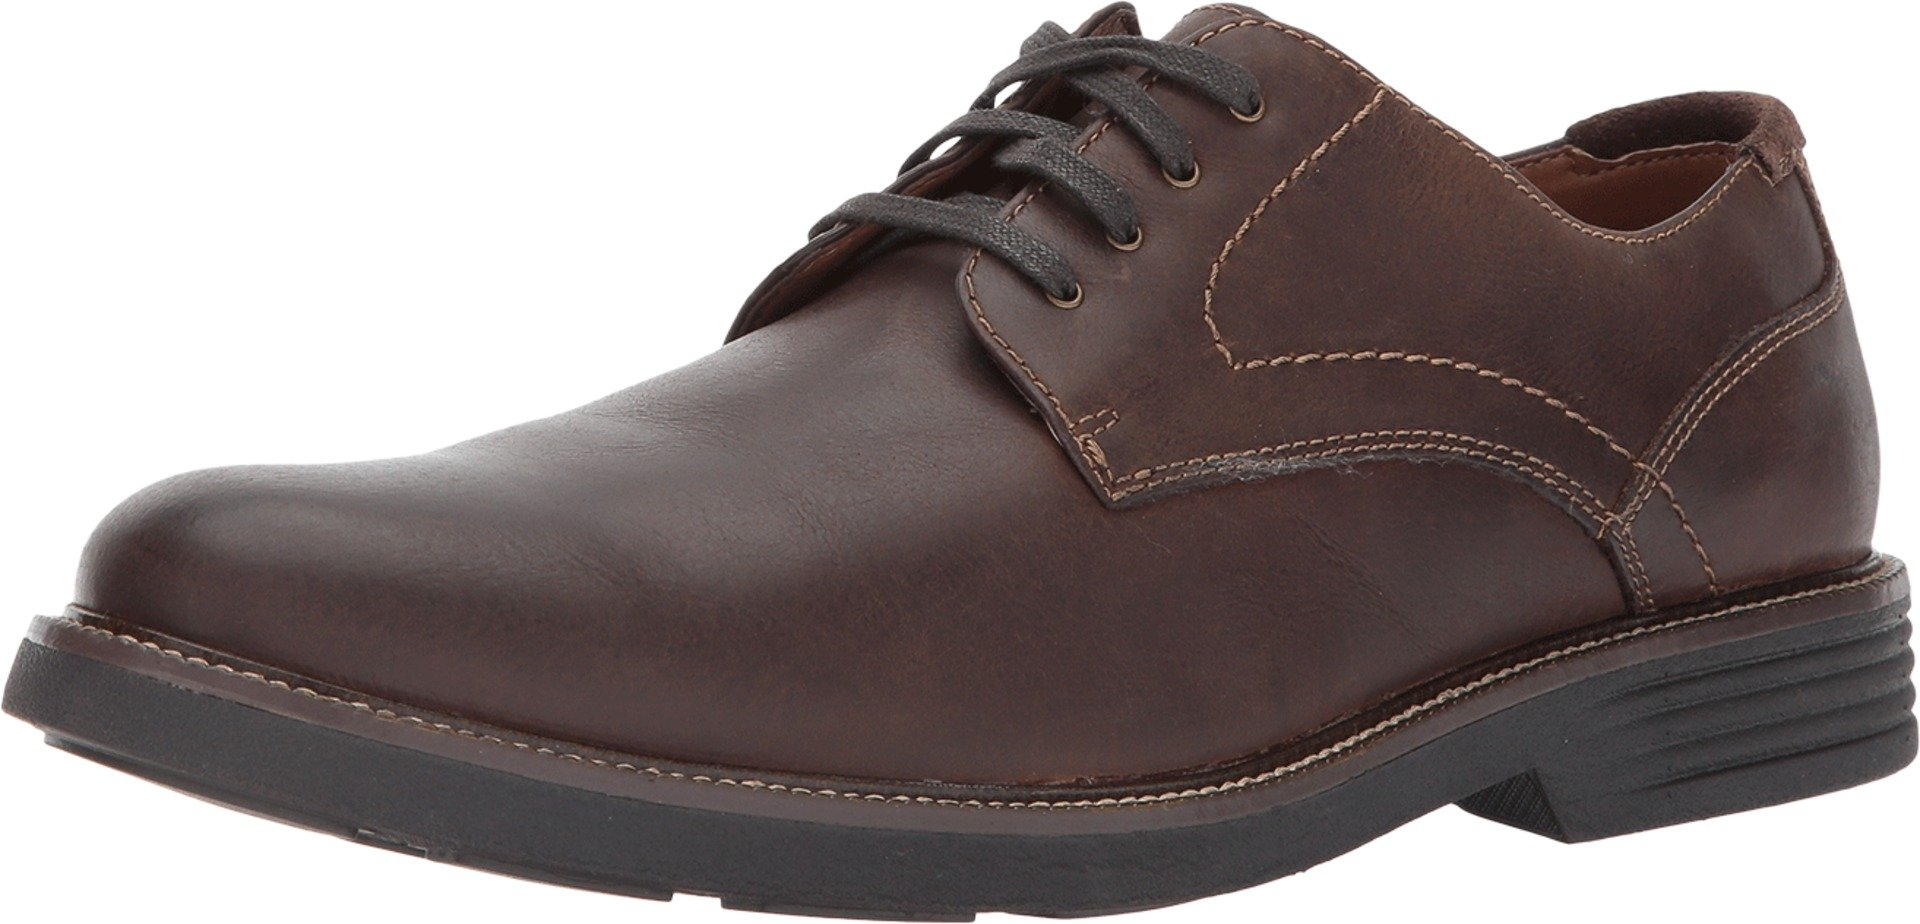 Dockers Mens Parkway Leather Dress Casual Oxford Shoe with NeverWet, Dark Brown, 10.5 W